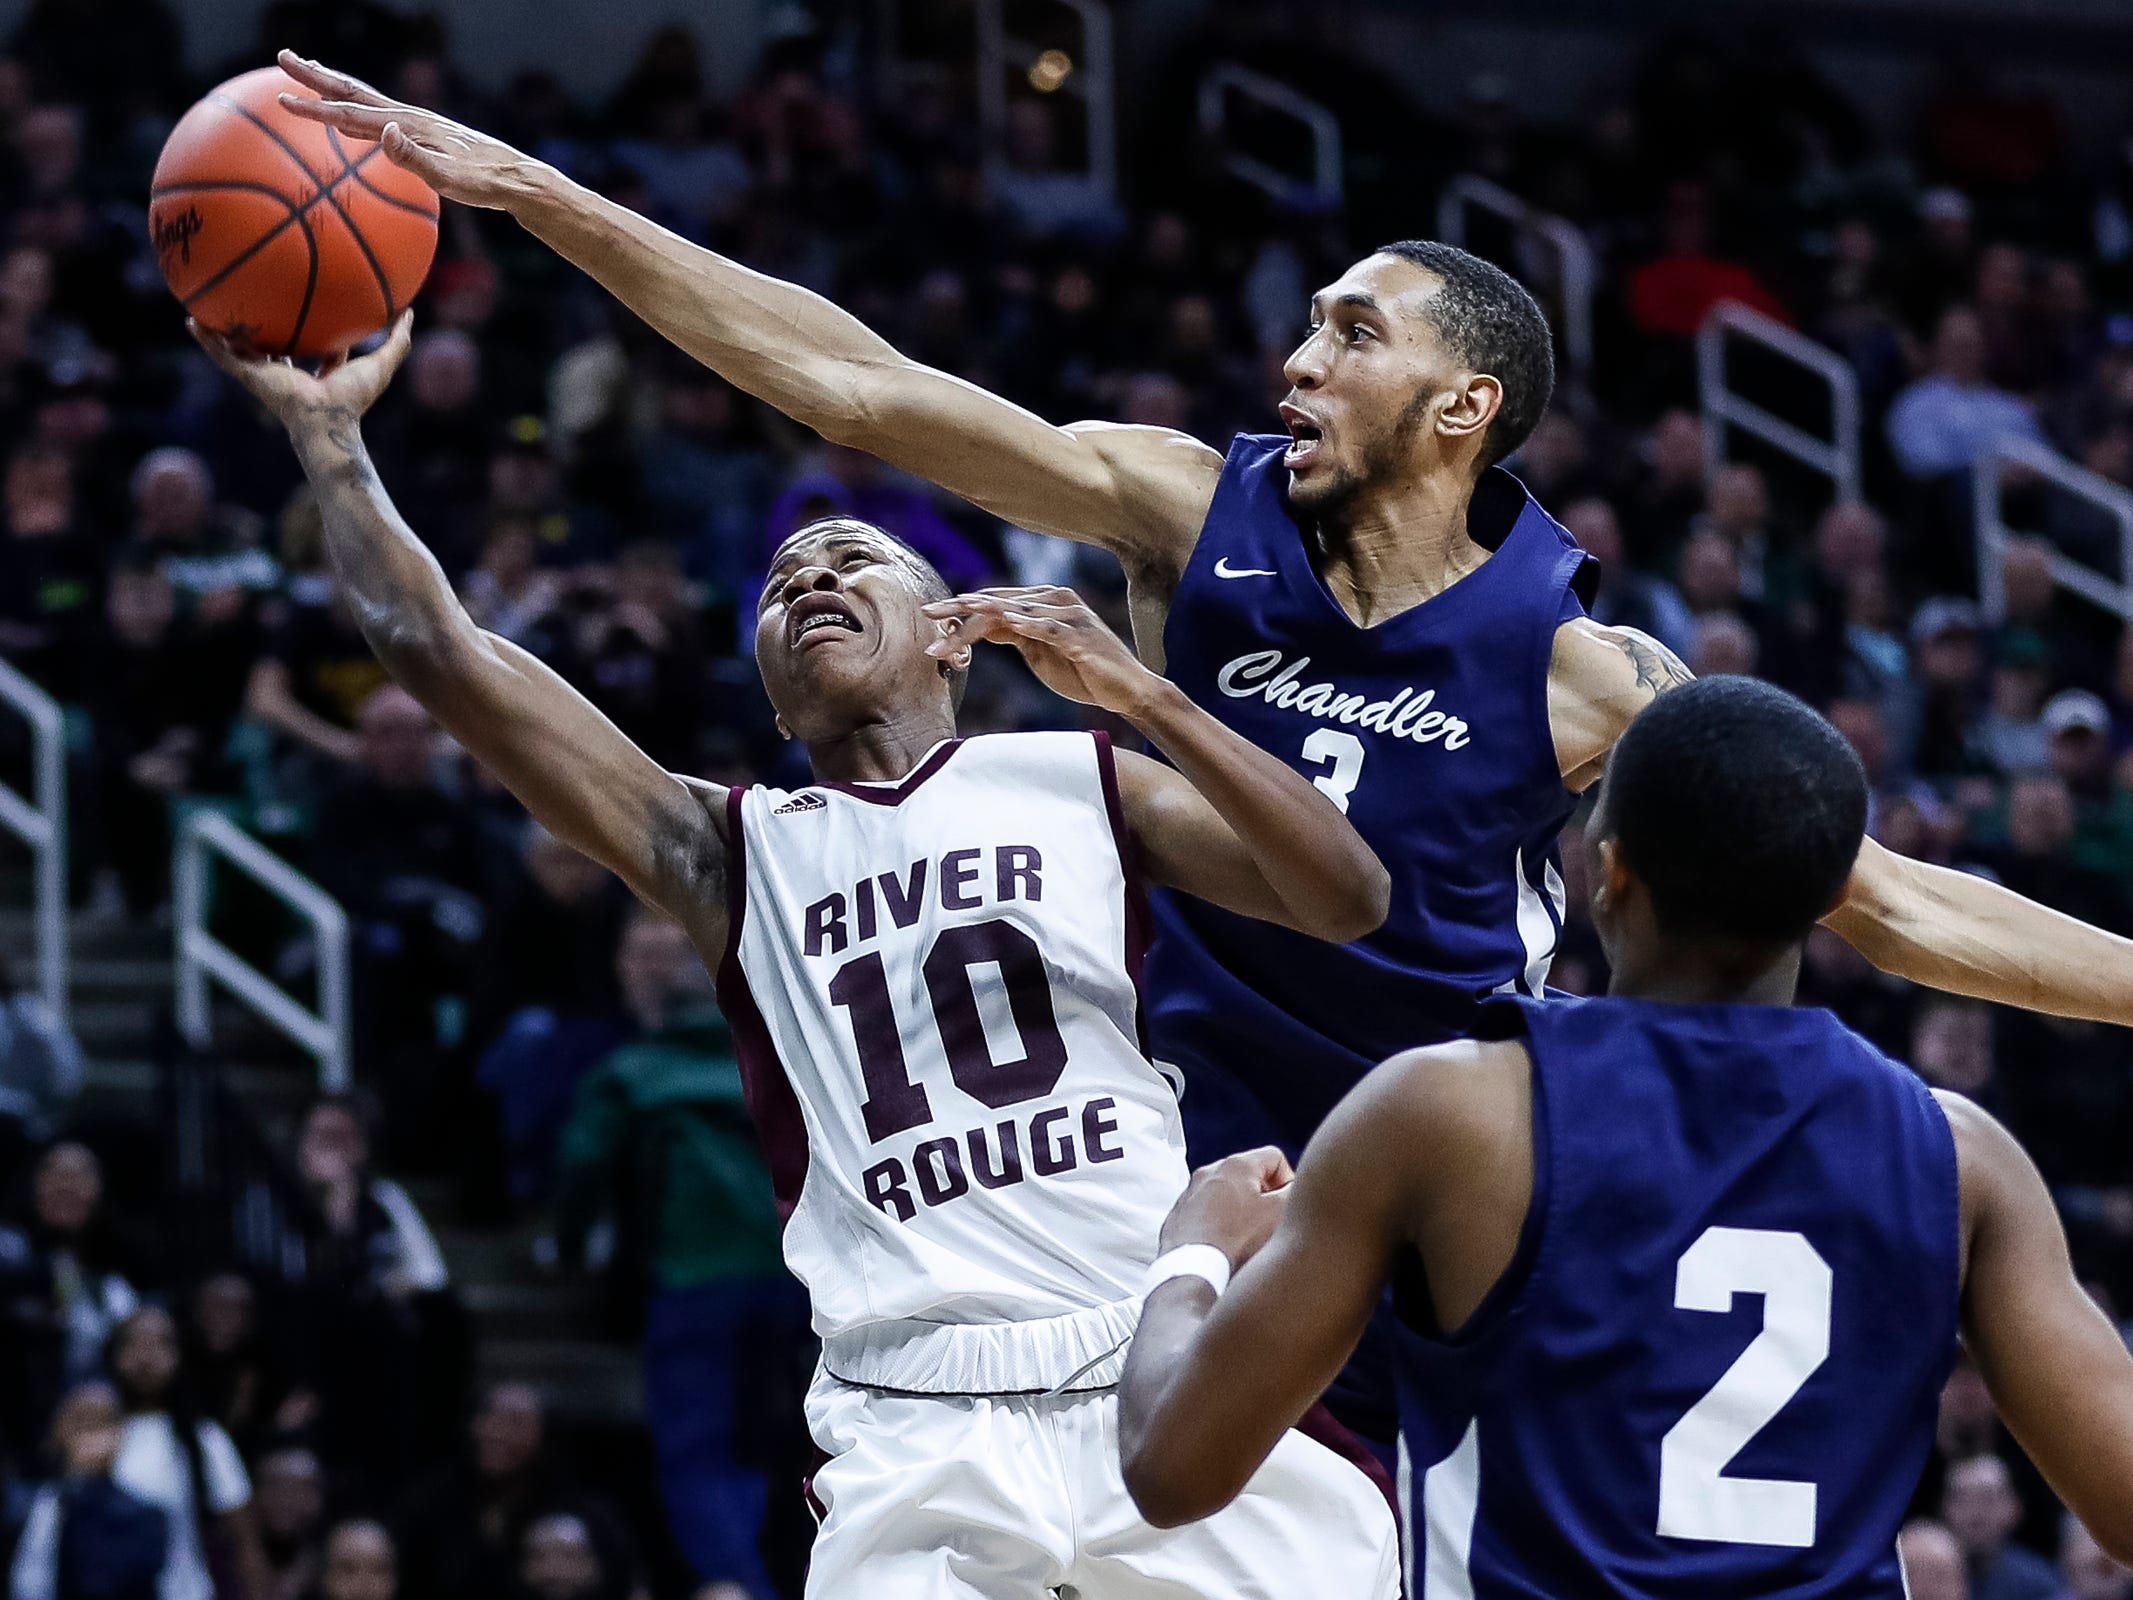 Harper Woods Chandler Park's Marquez Steele (3) blocks a layup from River Rouge's Bralin Toney (10) during the first half of MHSAA Division 2 semifinal at the Breslin Center in East Lansing, Friday, March 15, 2019.